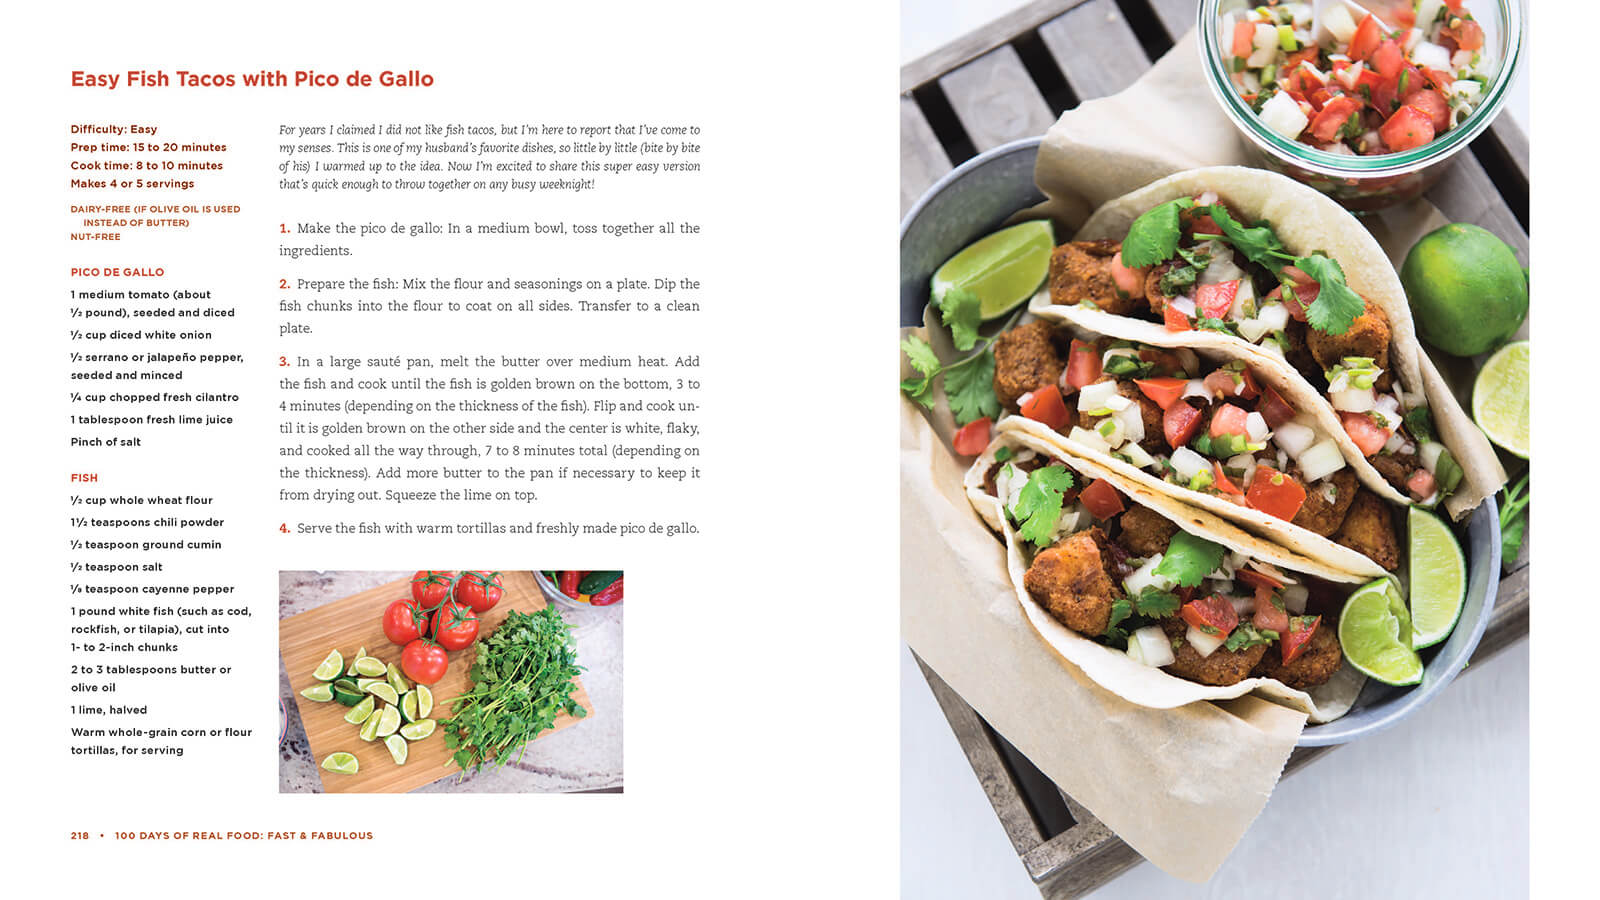 100 Days of Real Food new cookbook recipe: Easy Fish Tacos with Pico de Gallo